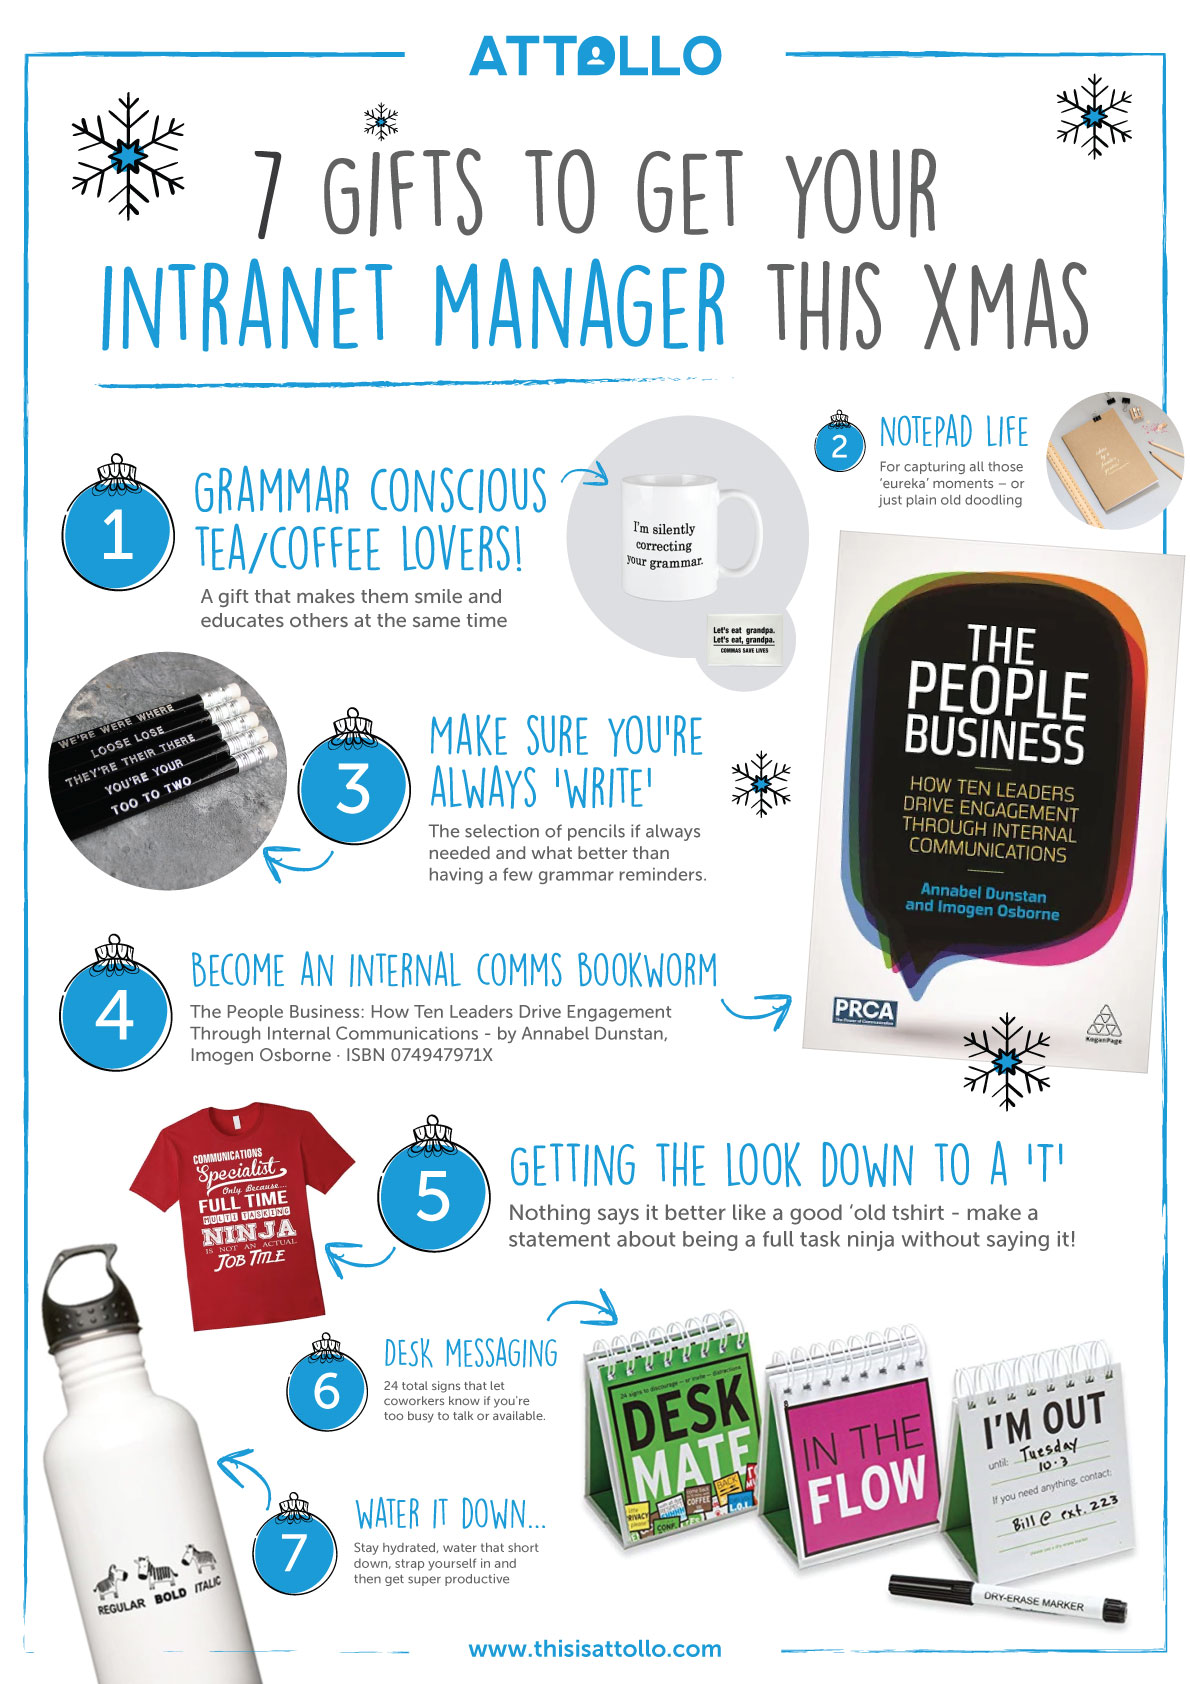 5 gifts to get your intranet manager